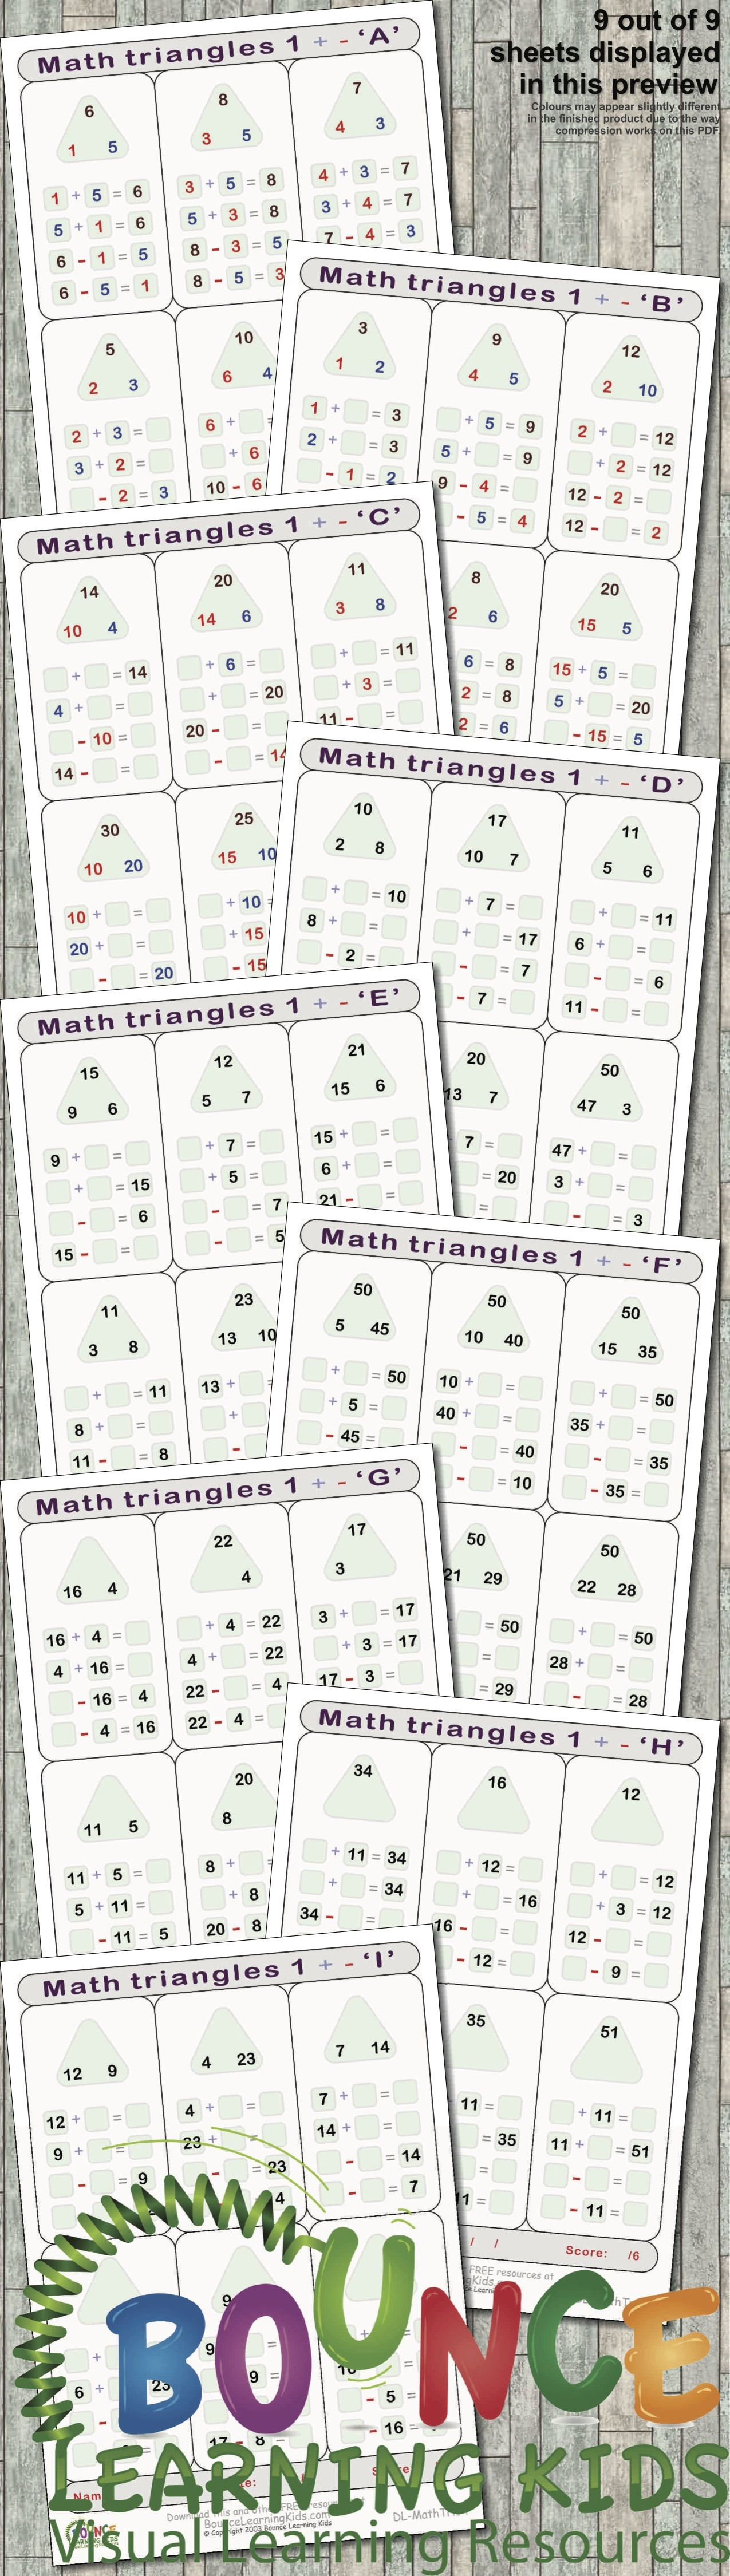 Math Triangles 1 9 Numeracy Sheets